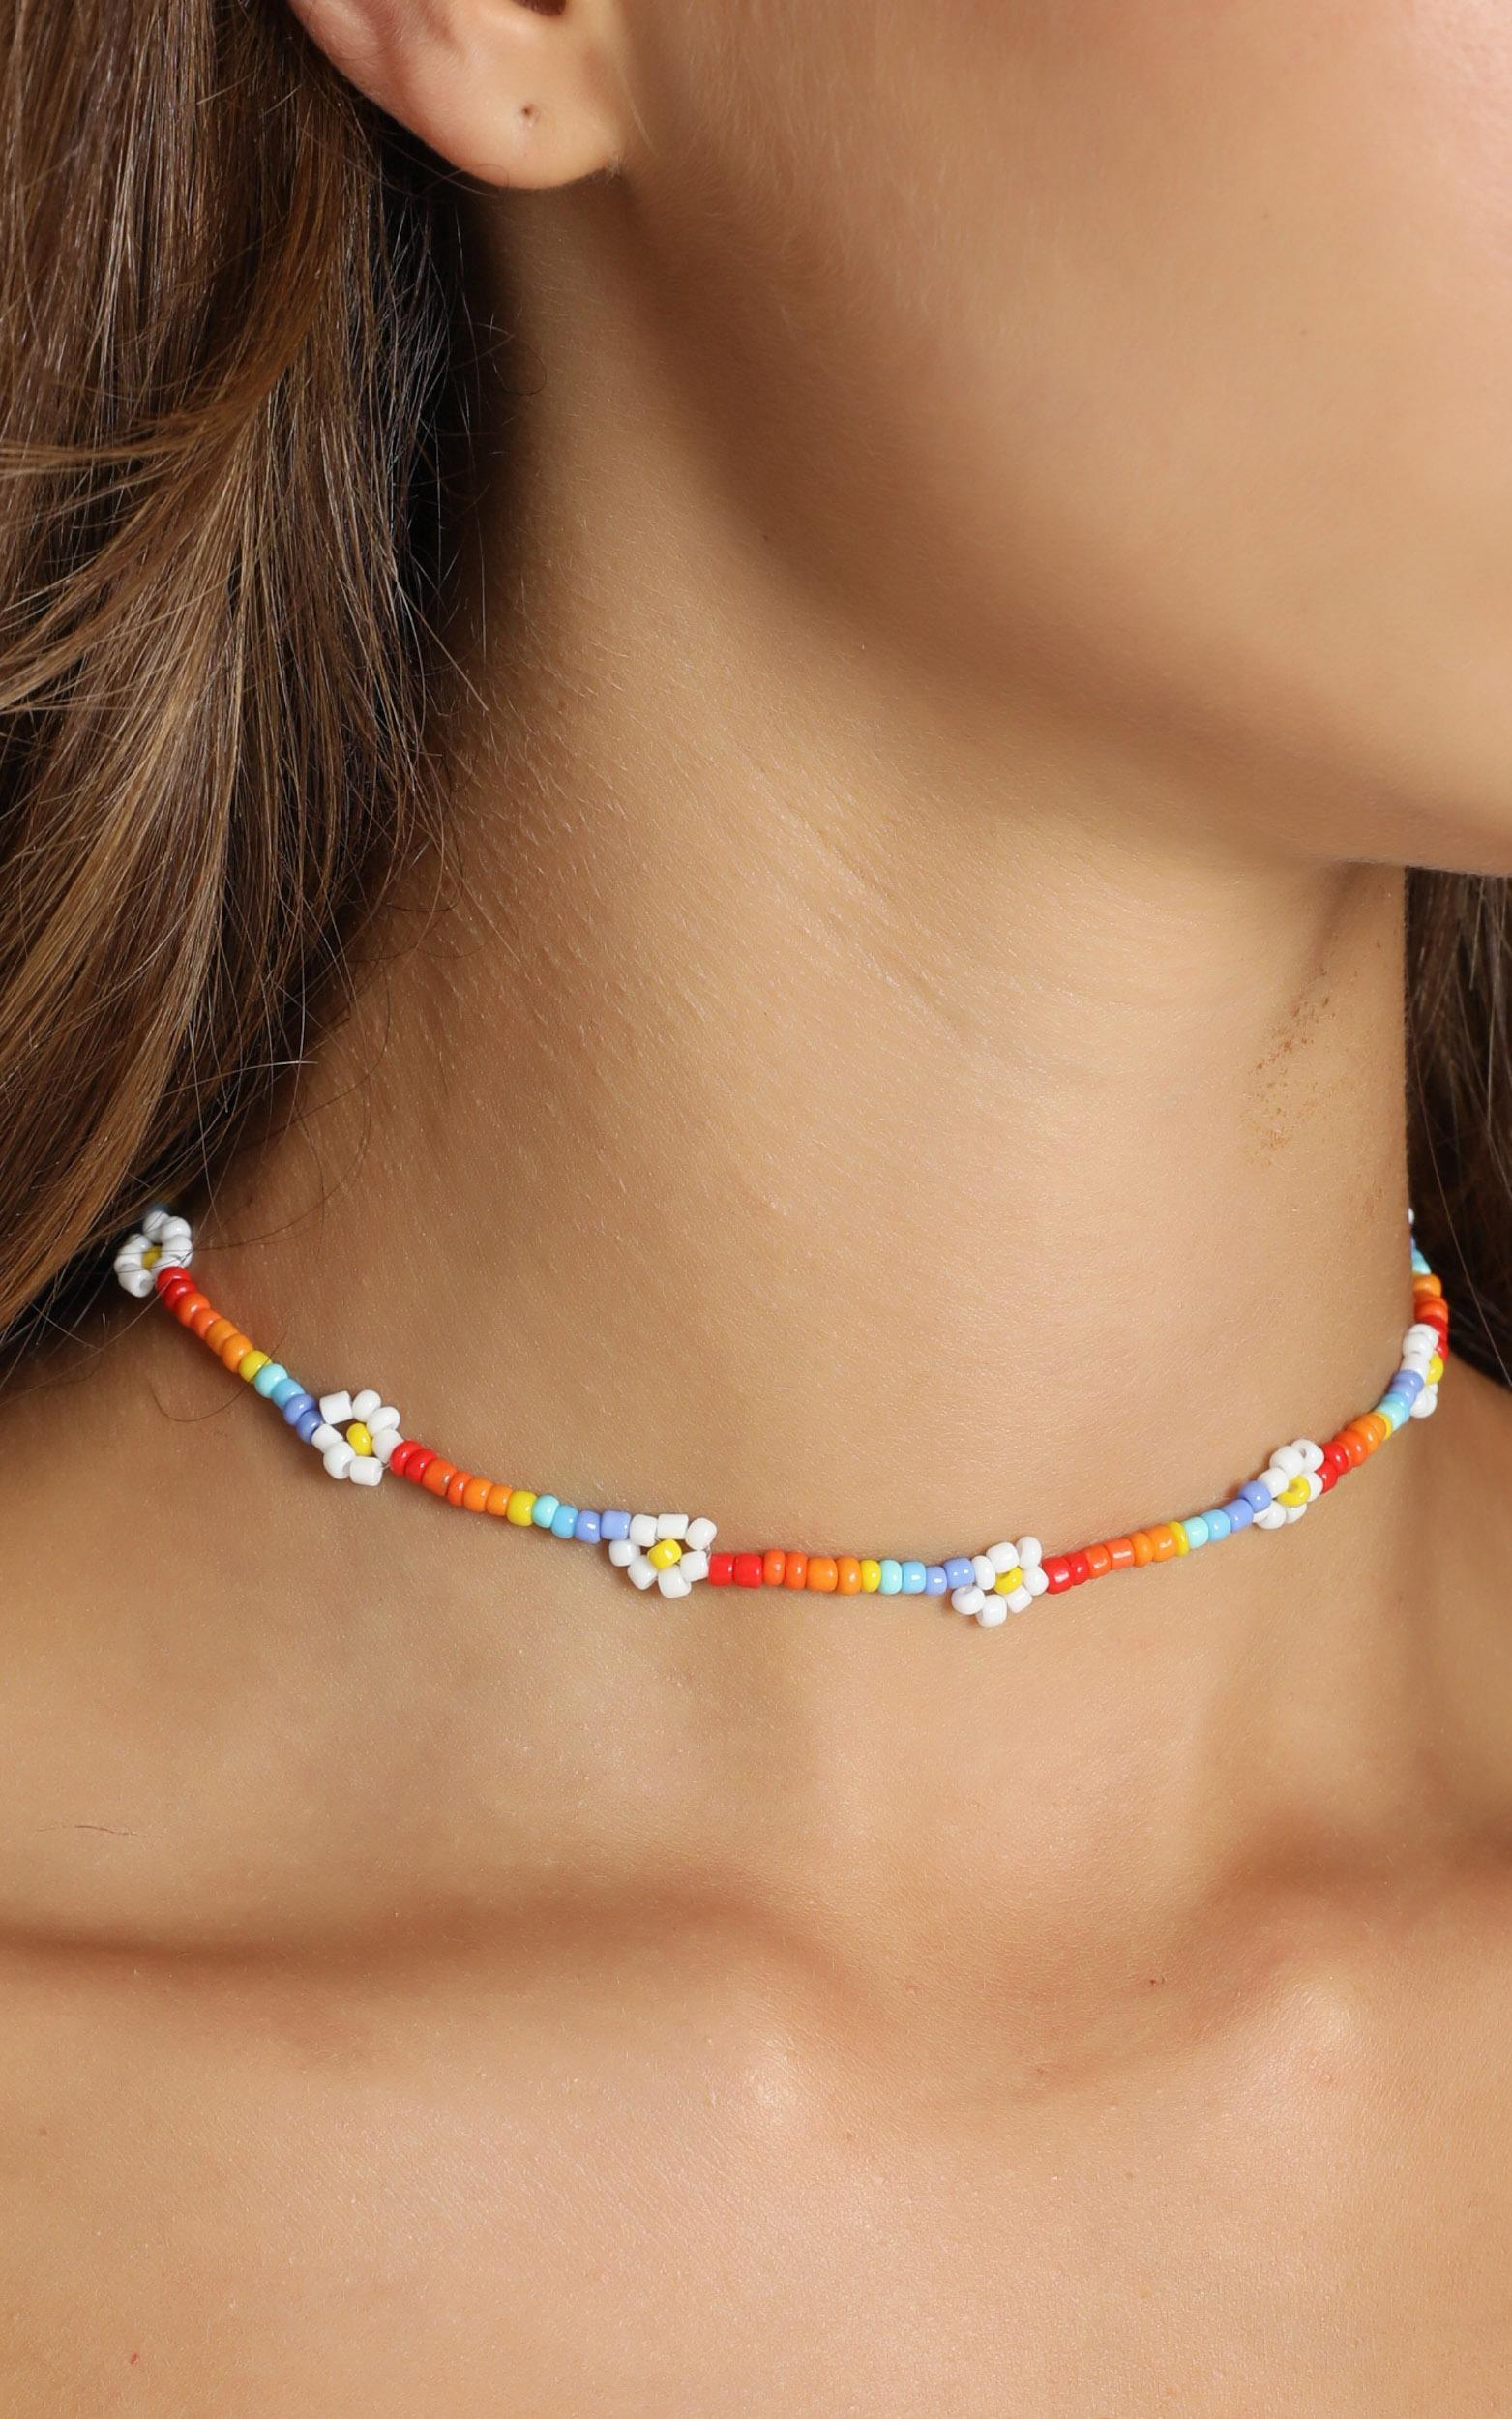 Bindy Beaded Flower Necklace in Multi Colour, , hi-res image number null